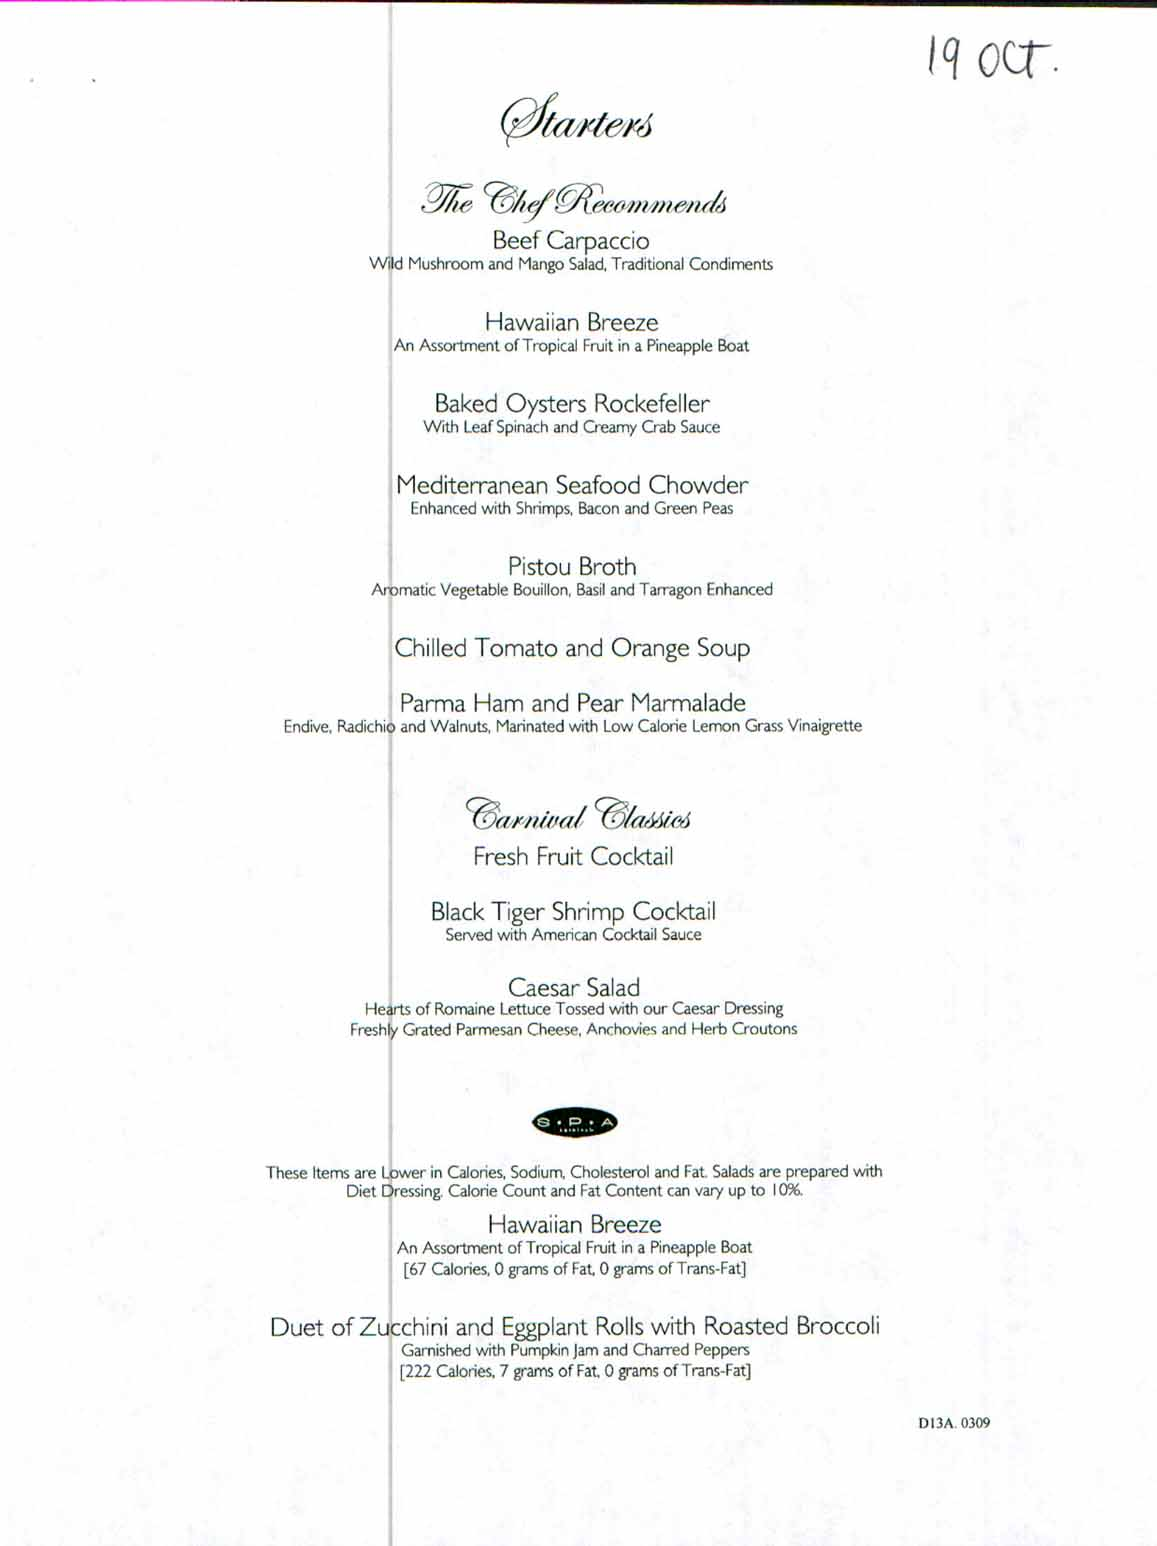 Carnival Dream Menu D13A0309